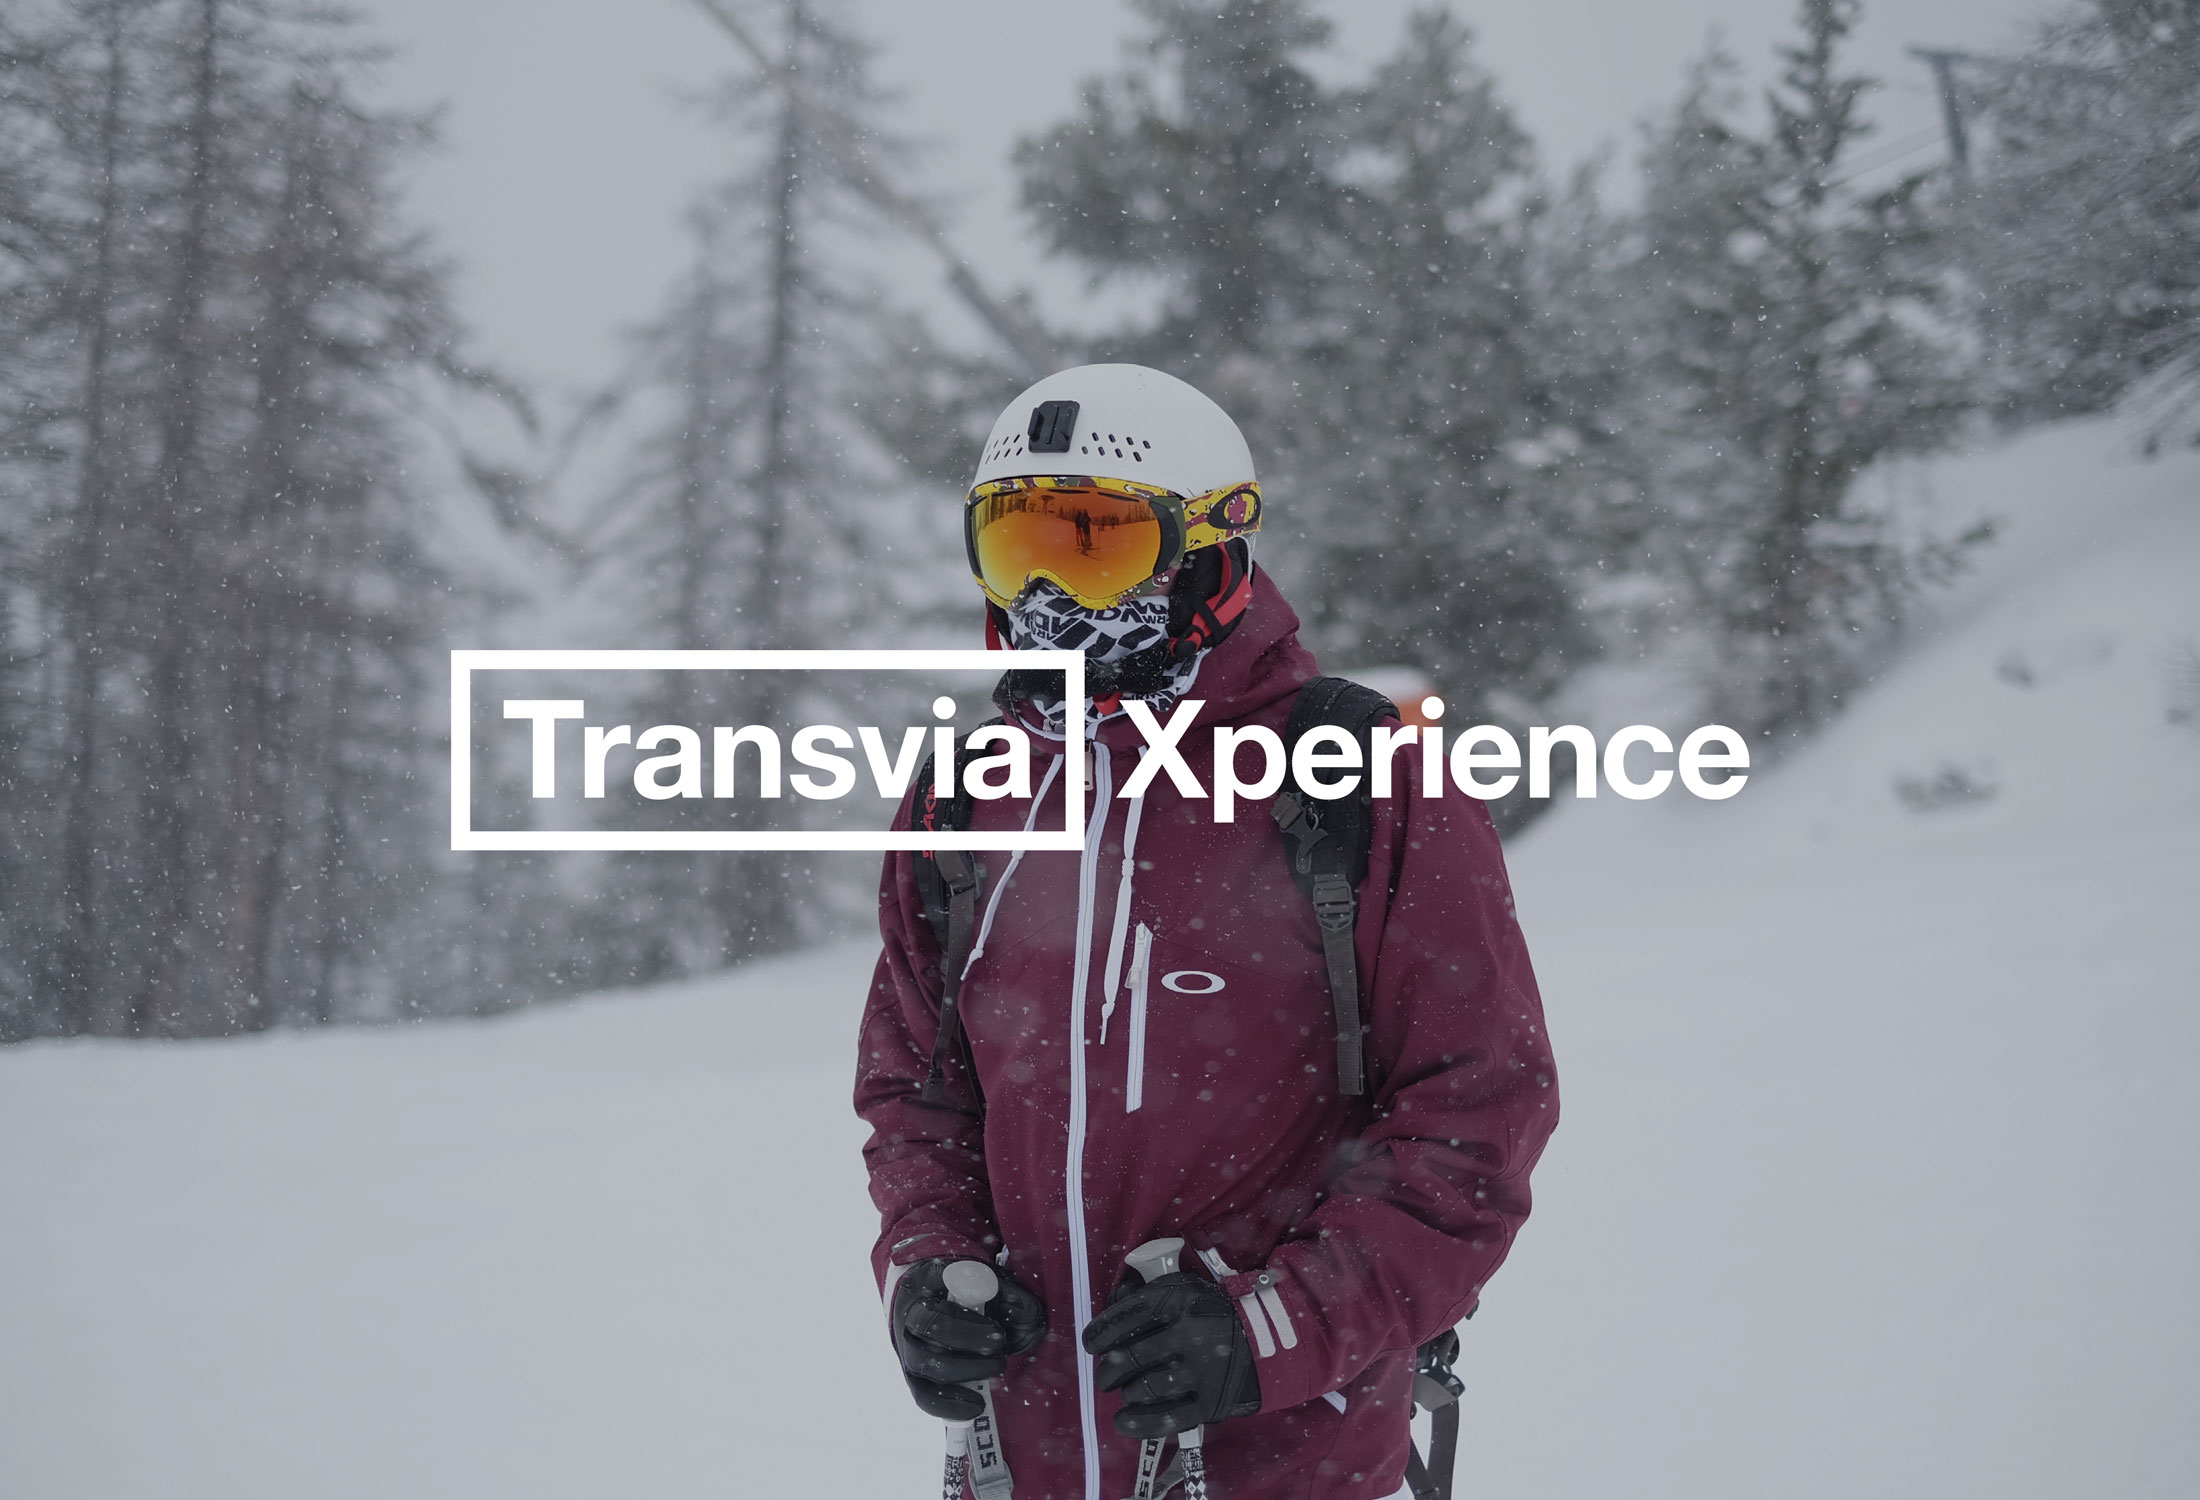 transvia experience